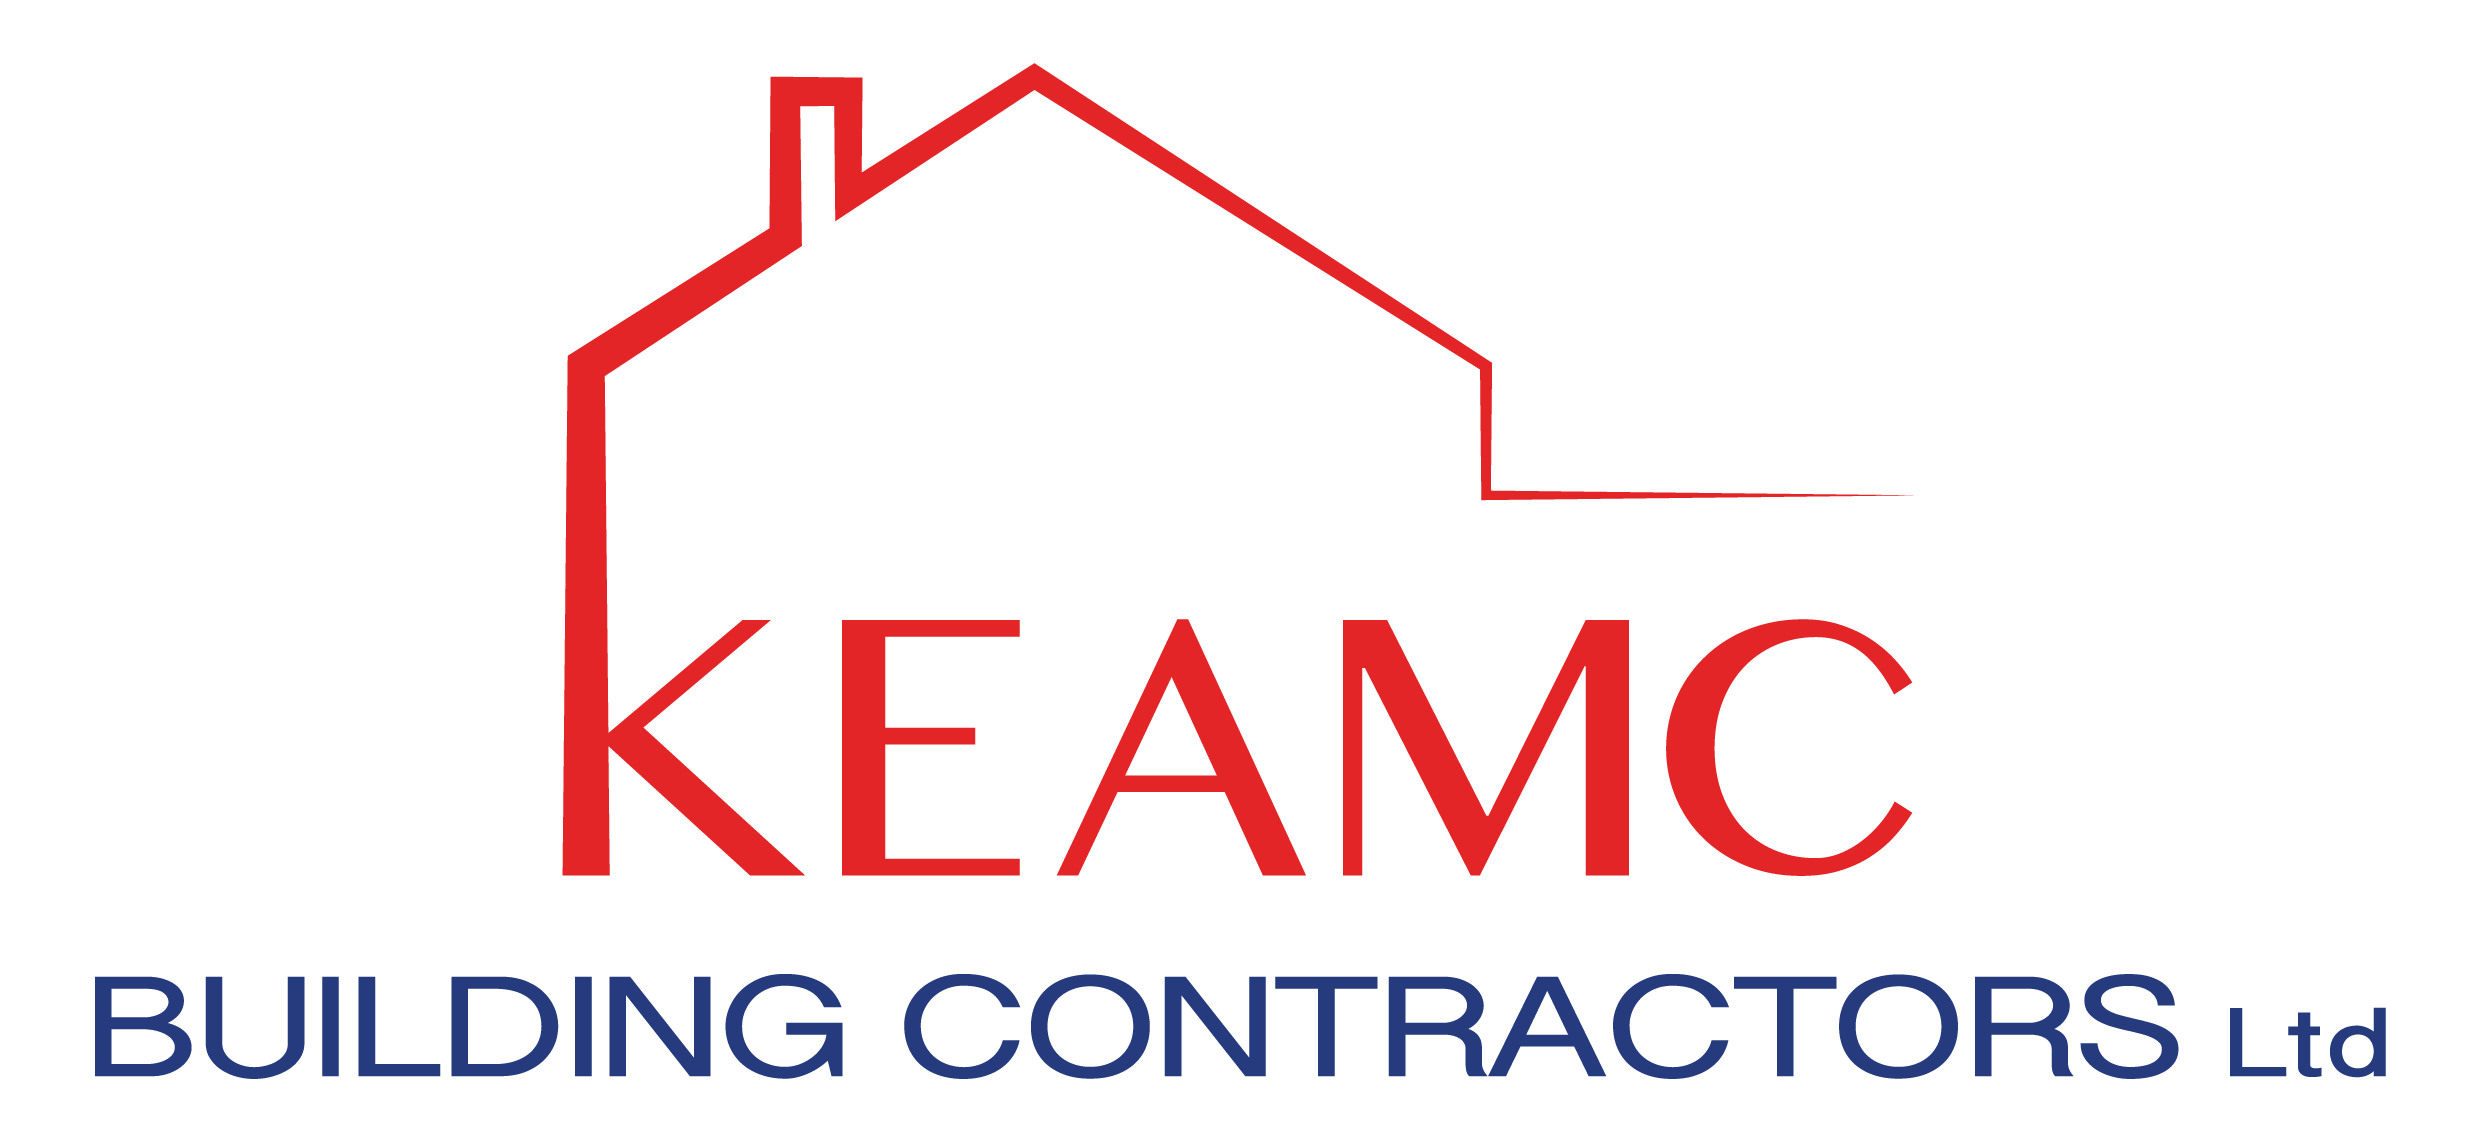 Keamc - Construction Contractors Meath